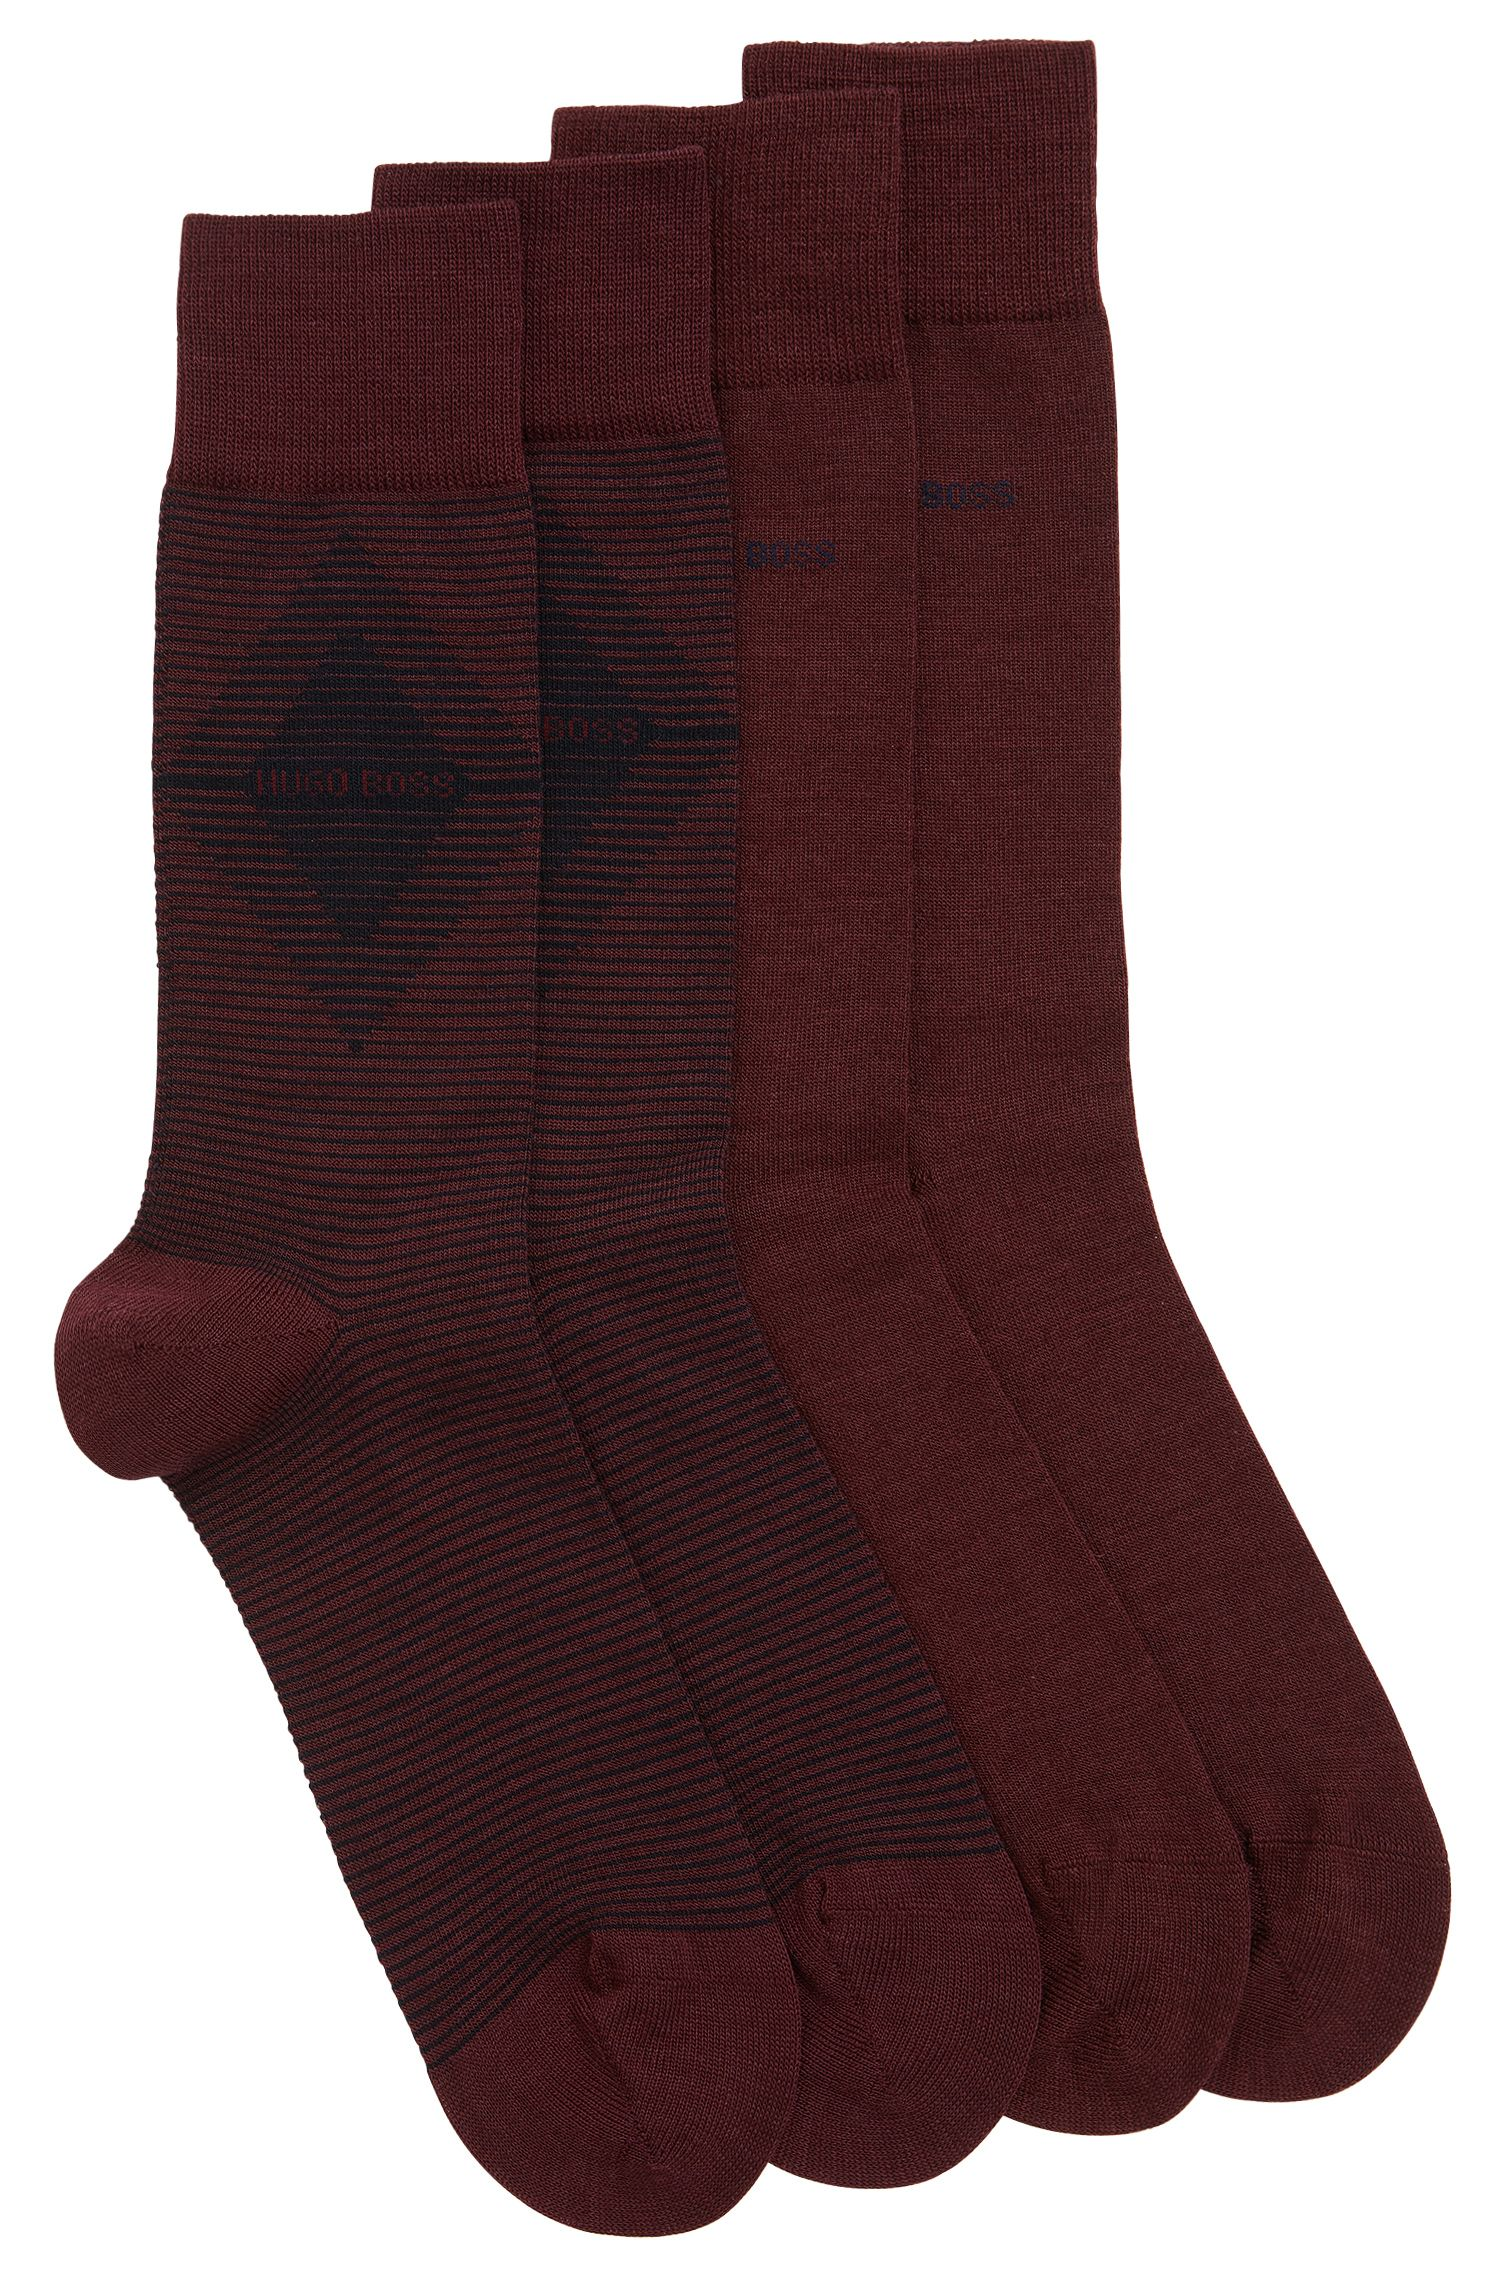 Two-pack of regular-length socks in combed fabric